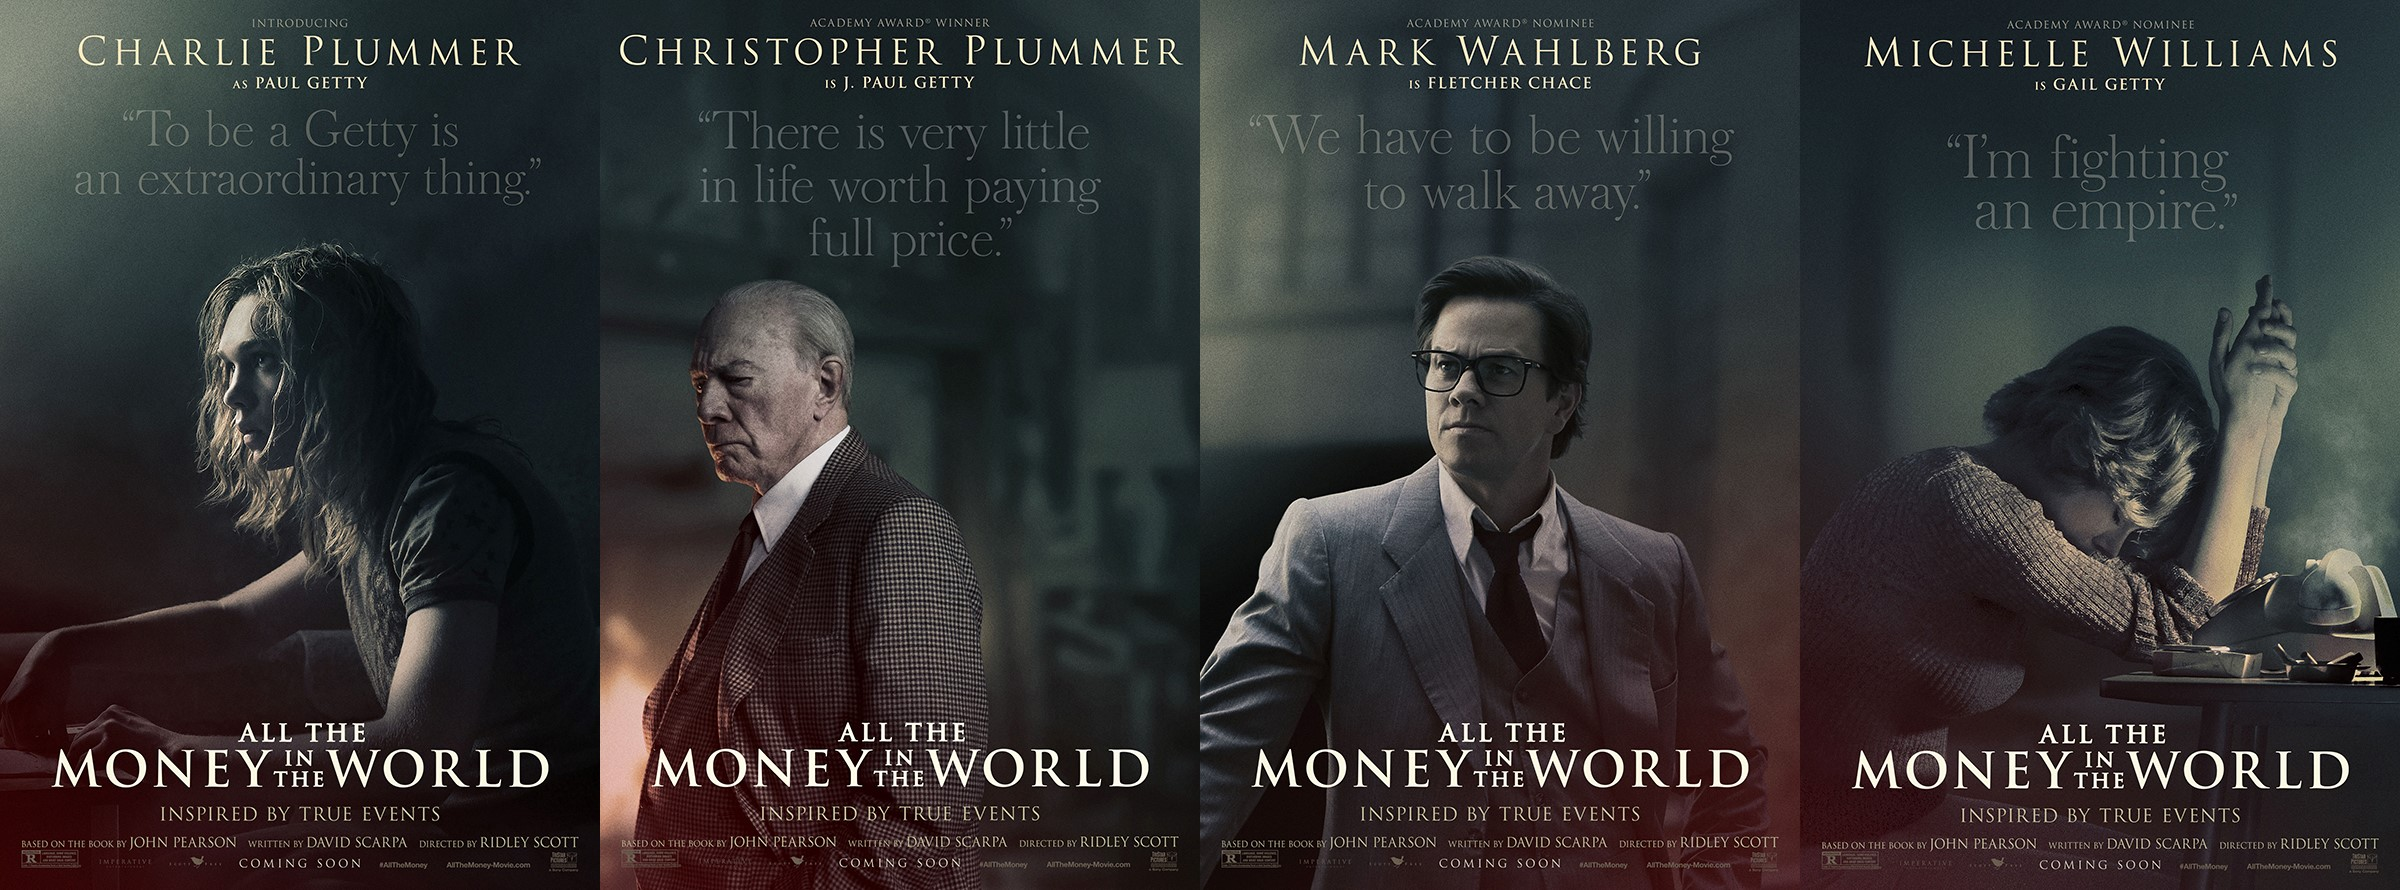 Christopher Plummer shines as J. Paul Getty in 'All the Money in the World' trailer